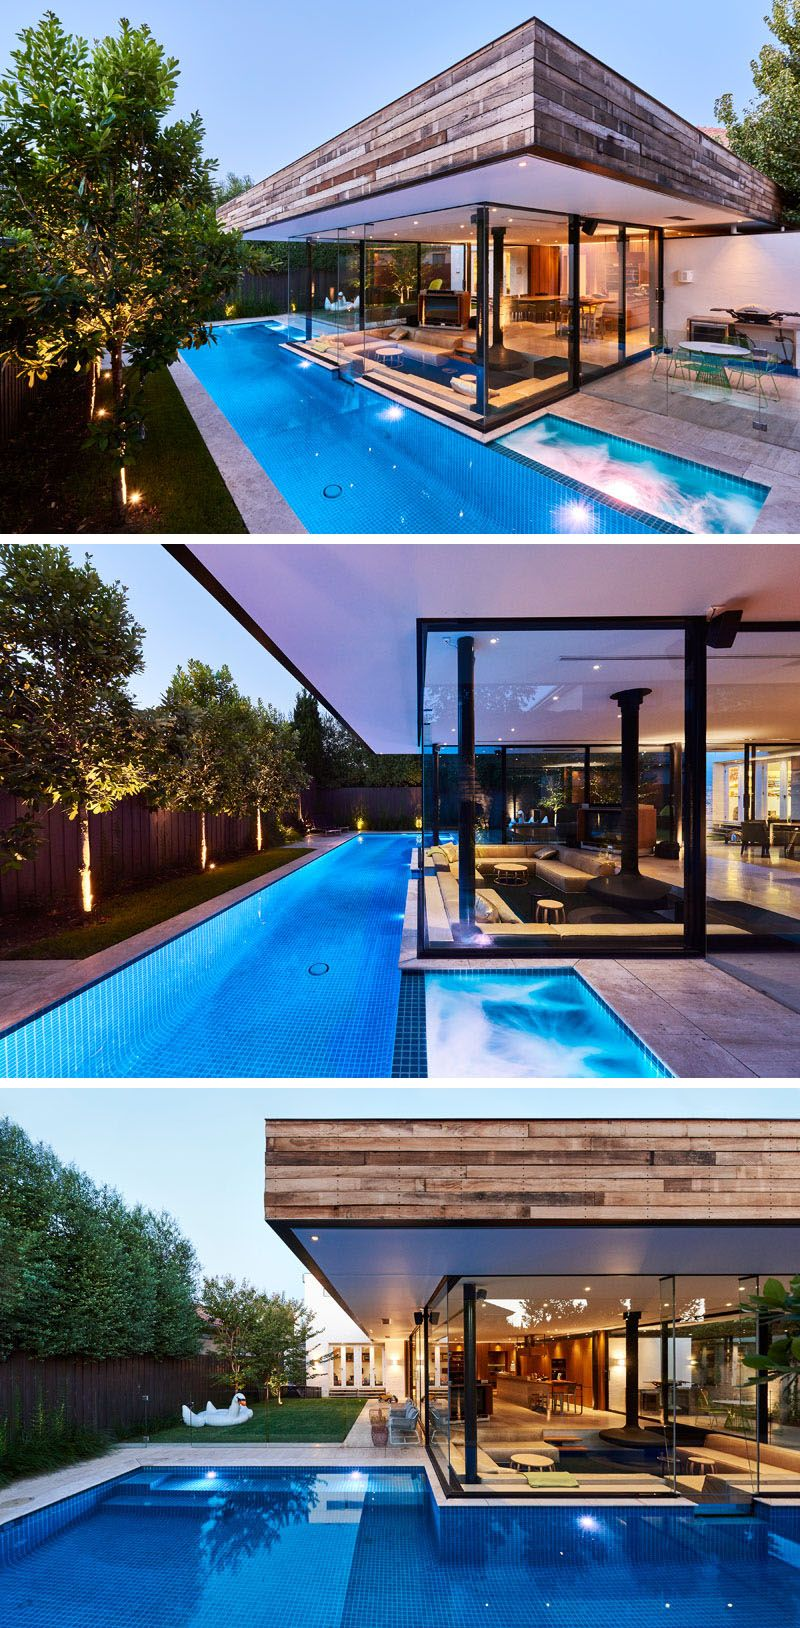 This House Has A Sunken Living Room So People Can Be At The Same Level As Those In The Swimming Pool Next To It Modern Pools Pool Houses Sunken Living Room